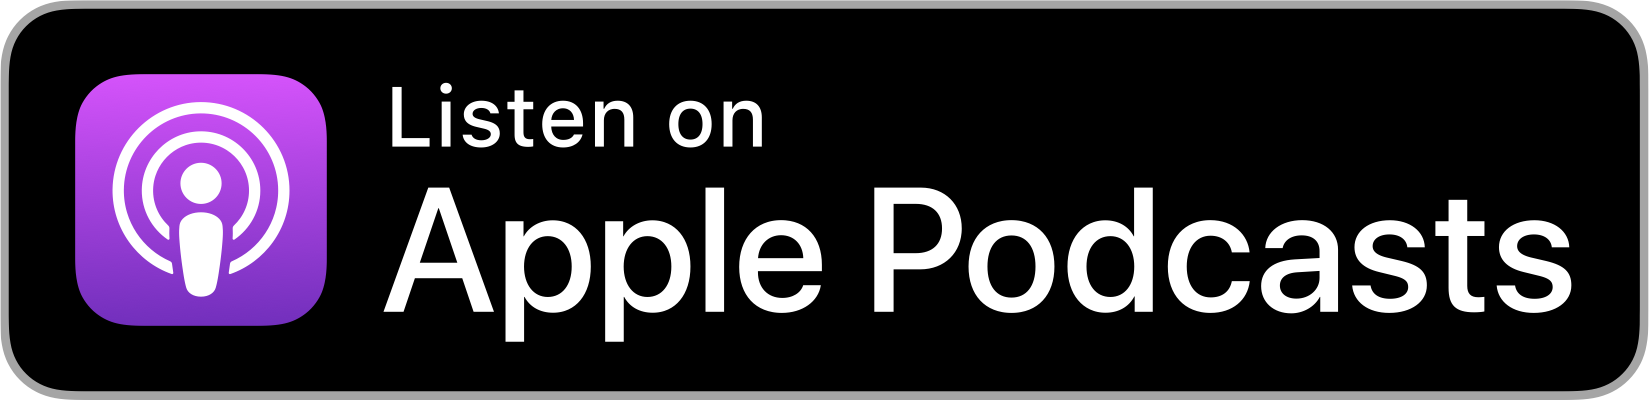 Apple_Podcasts_Listen_Badge.png